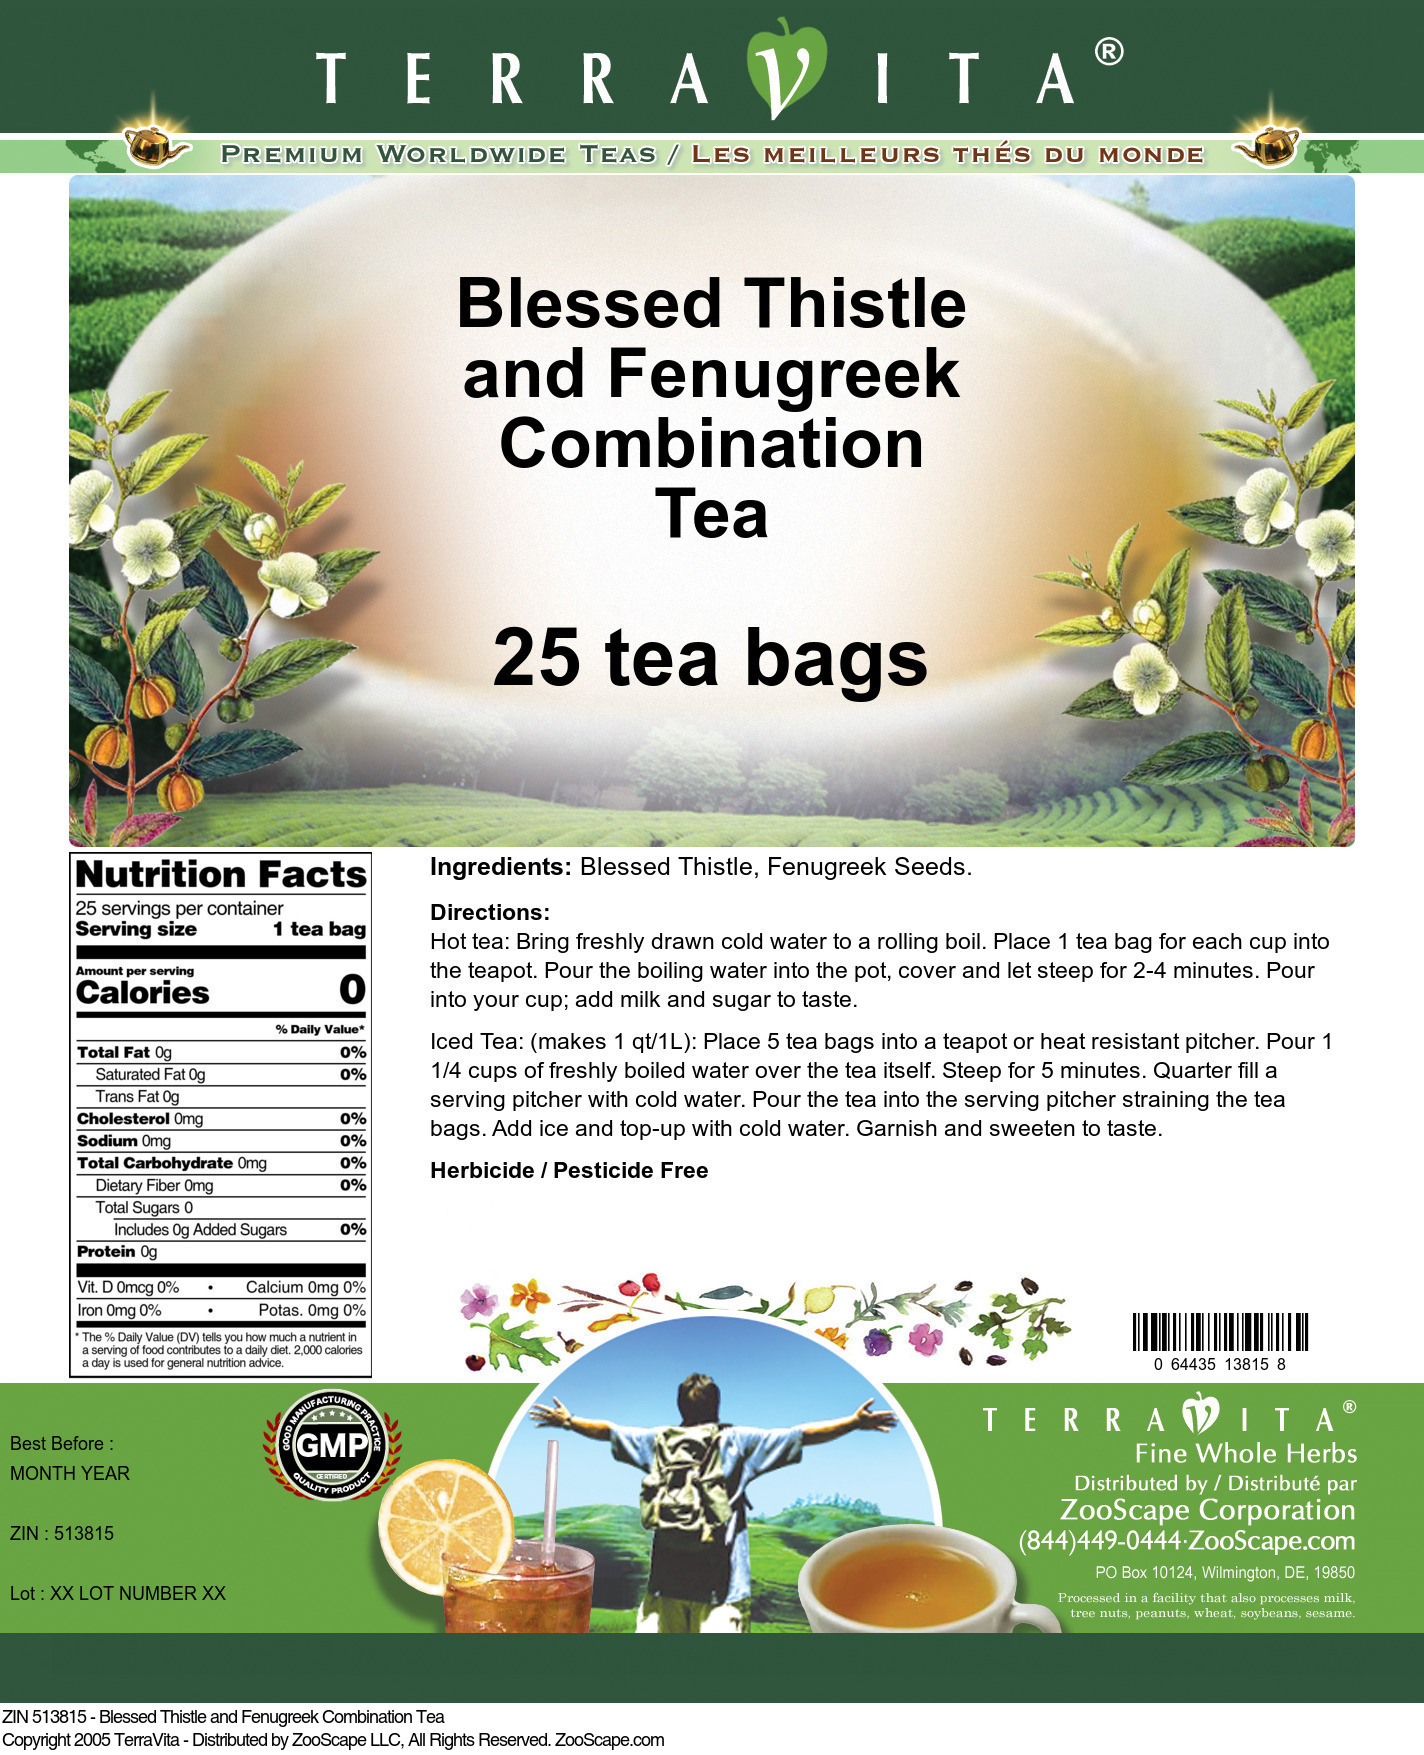 Blessed Thistle and Fenugreek Combination Tea